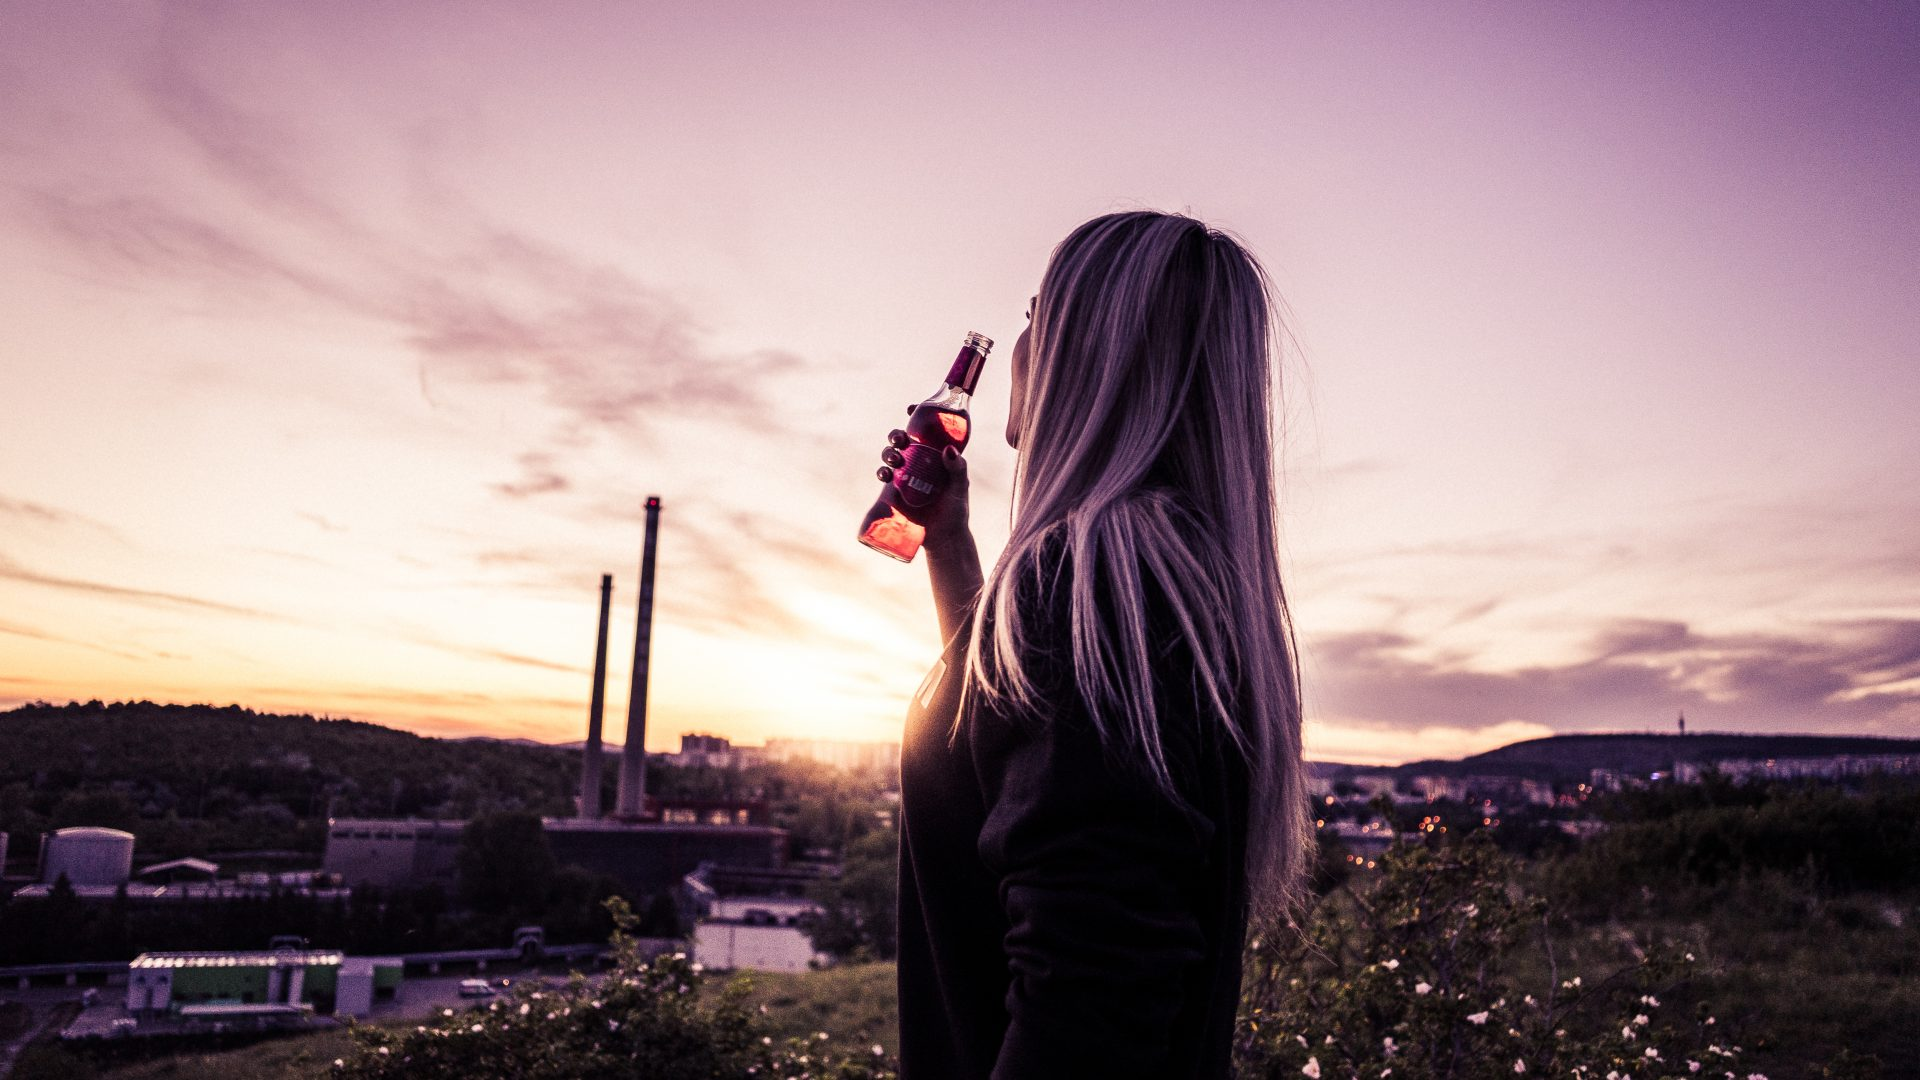 young-woman-enjoying-a-drink-in-sunset-picjumbo-com